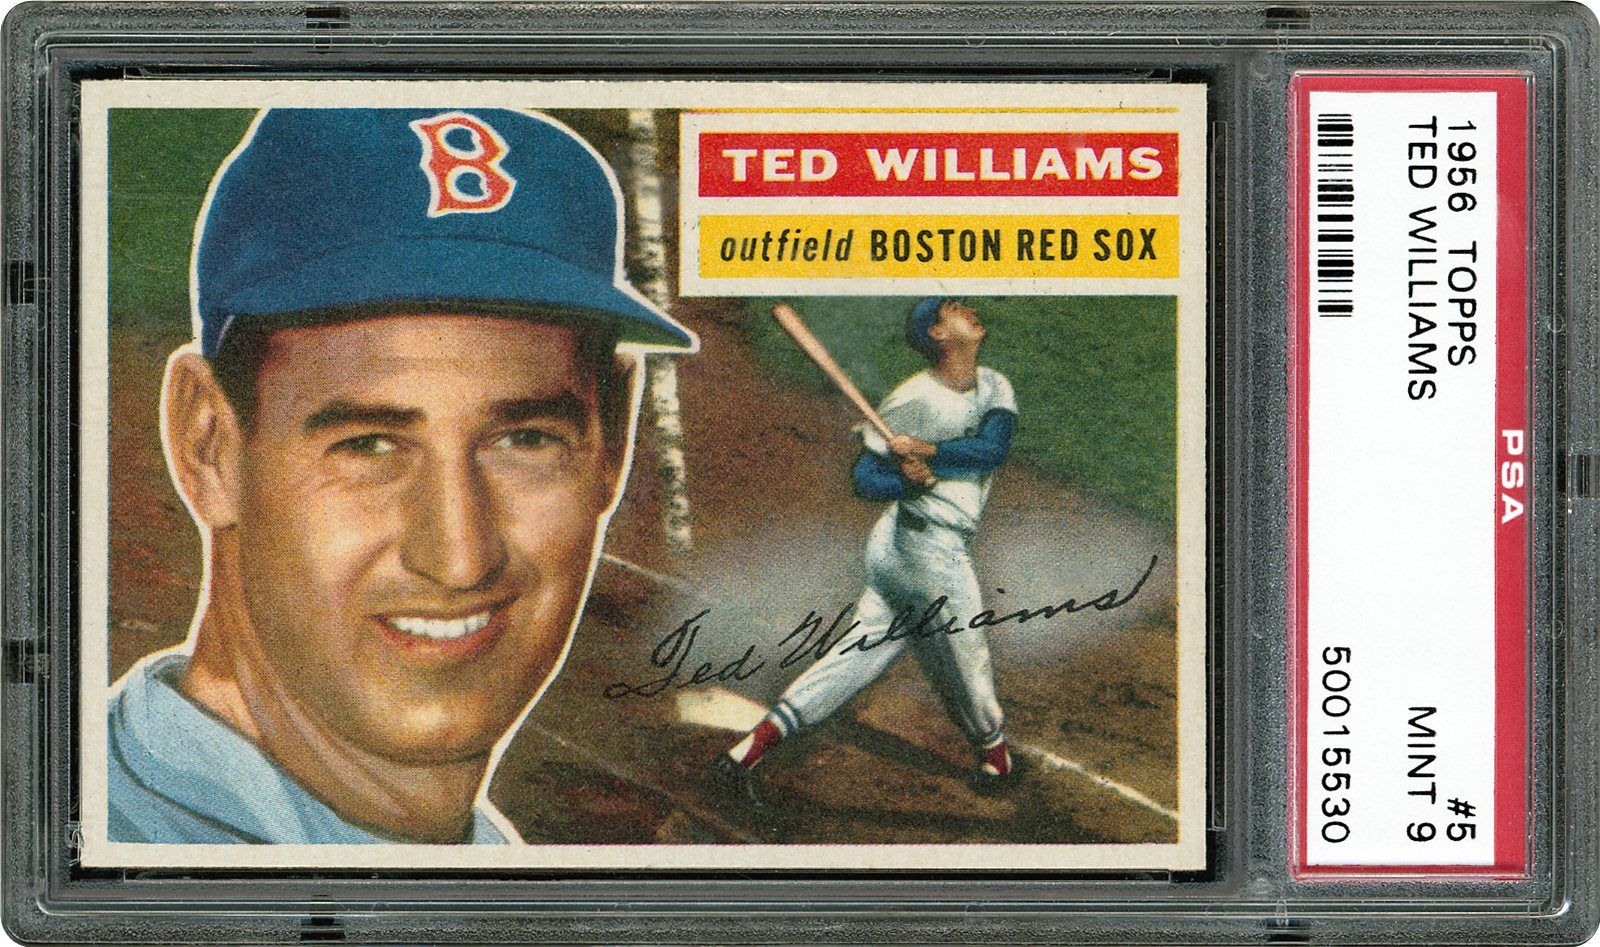 1959 topps stan musial ted williams boston red sox ted